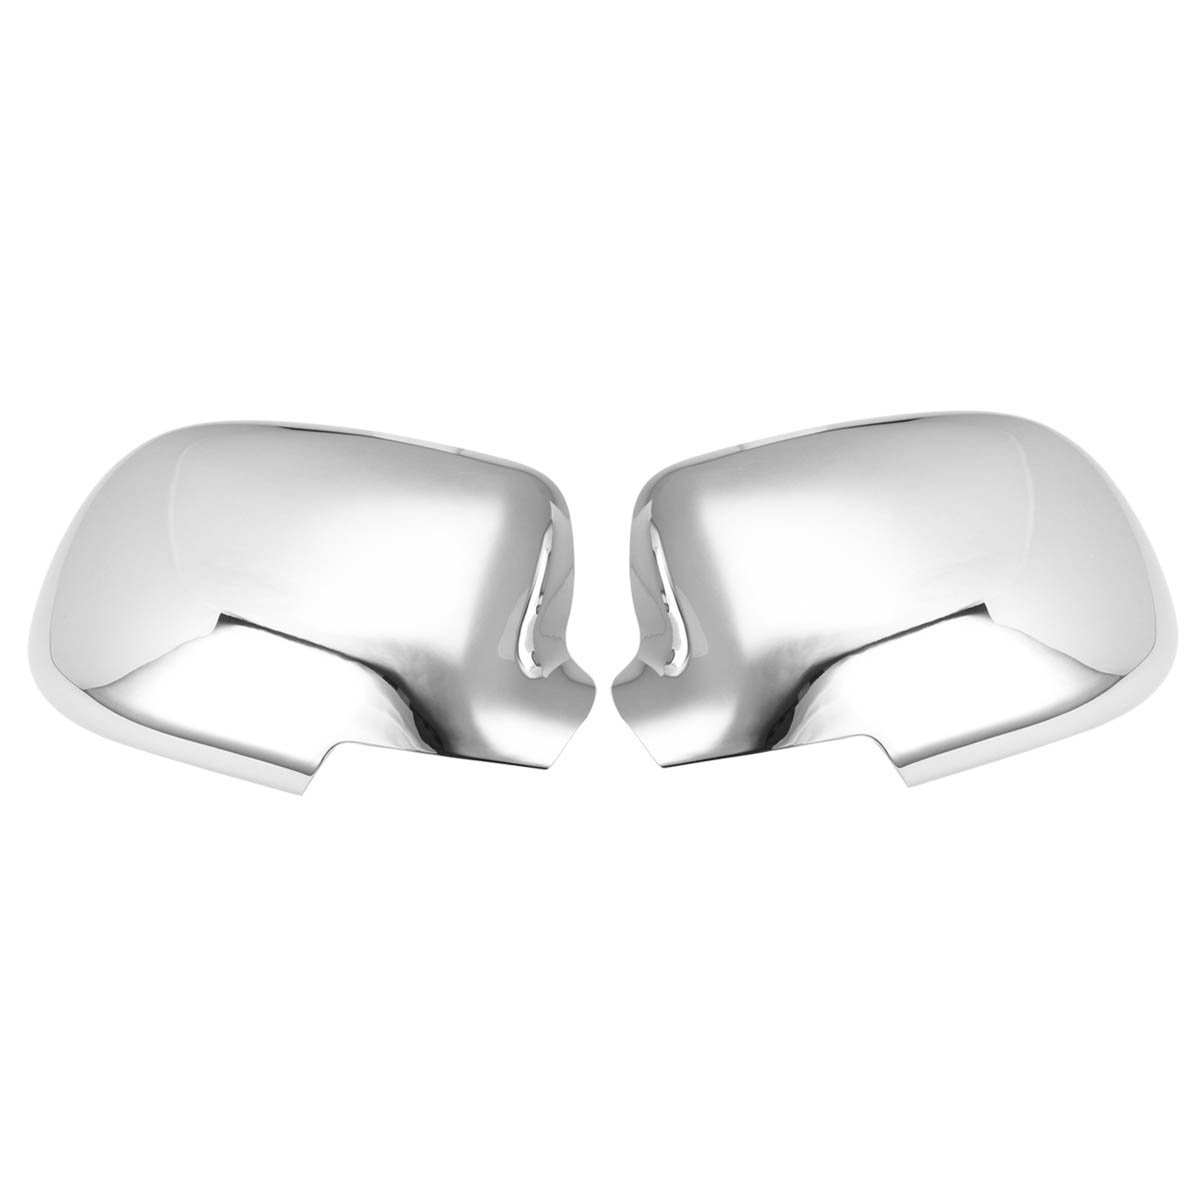 Chrome Covers Mirror Cap /& 4 Door Handle For CHEVY CHEVROLET Avalanche 02-06